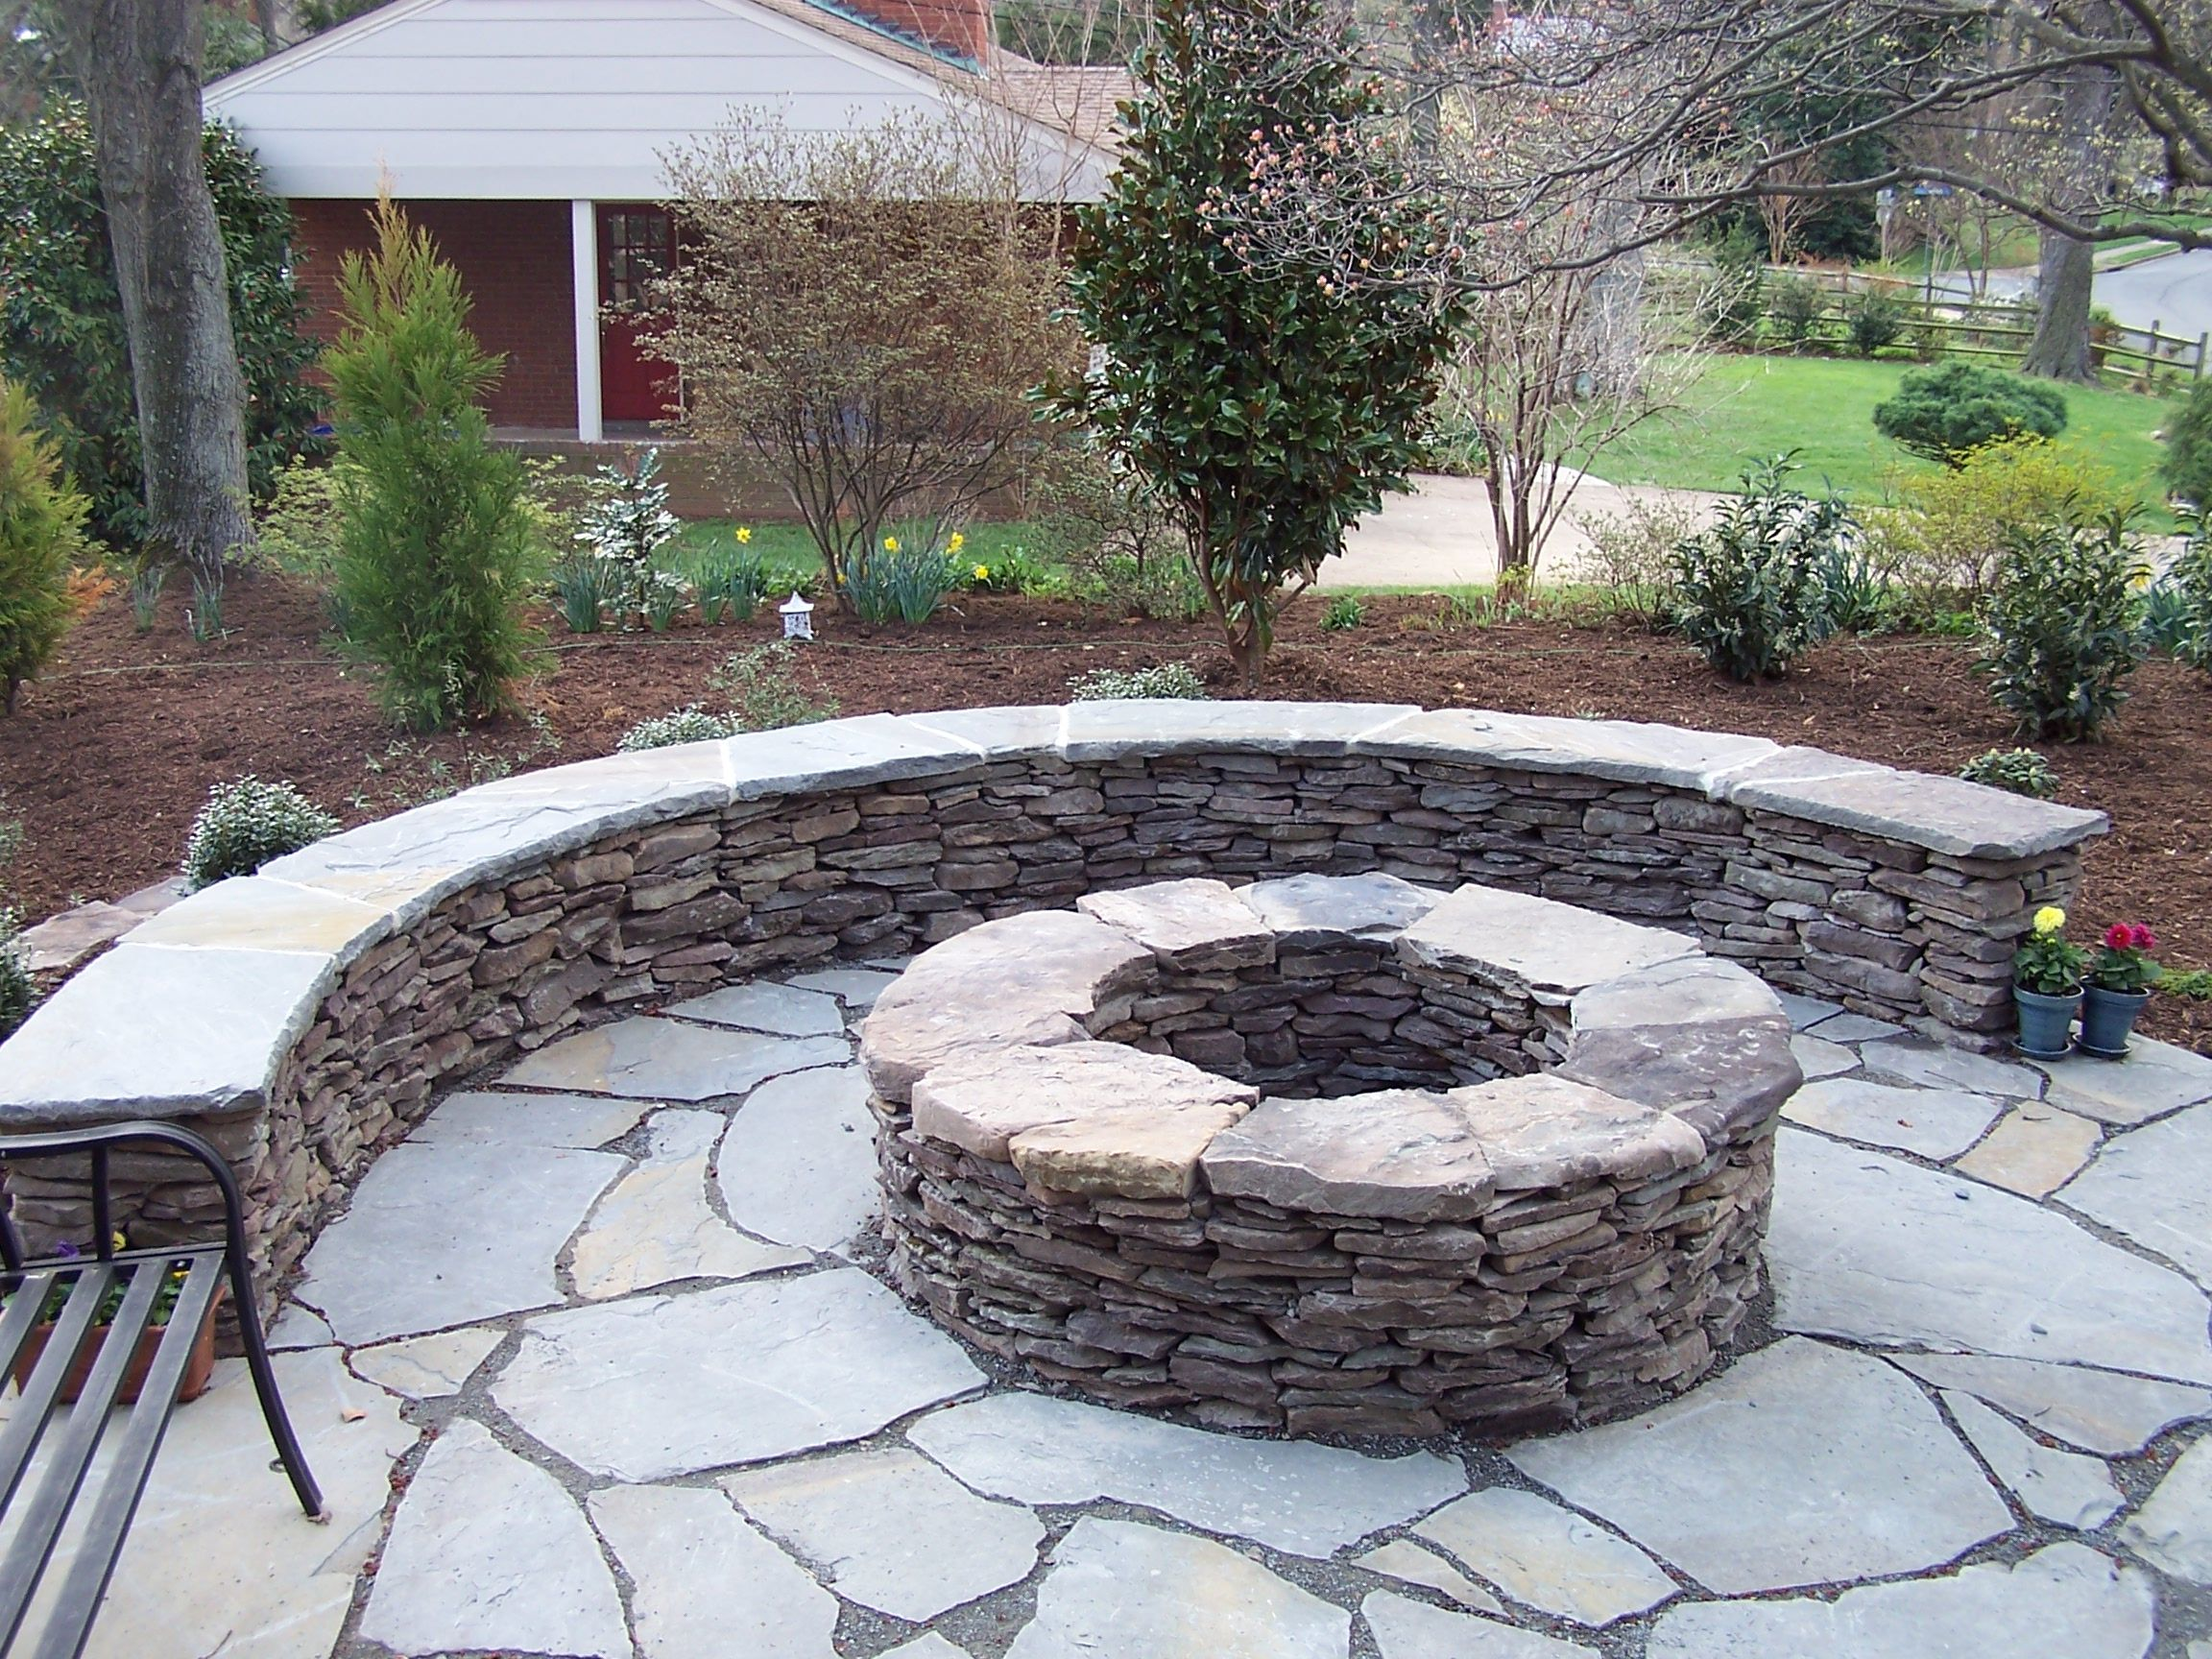 Fire Pit Backyard Ideas diy fire pits 2 Outdoor Fire Pit Ideas For The Backyard Home Decorator Shop Building A Outdoor Fire Pit C A C Bb Photo Gallery Backyard Making A Fire Pit With Rocks Home